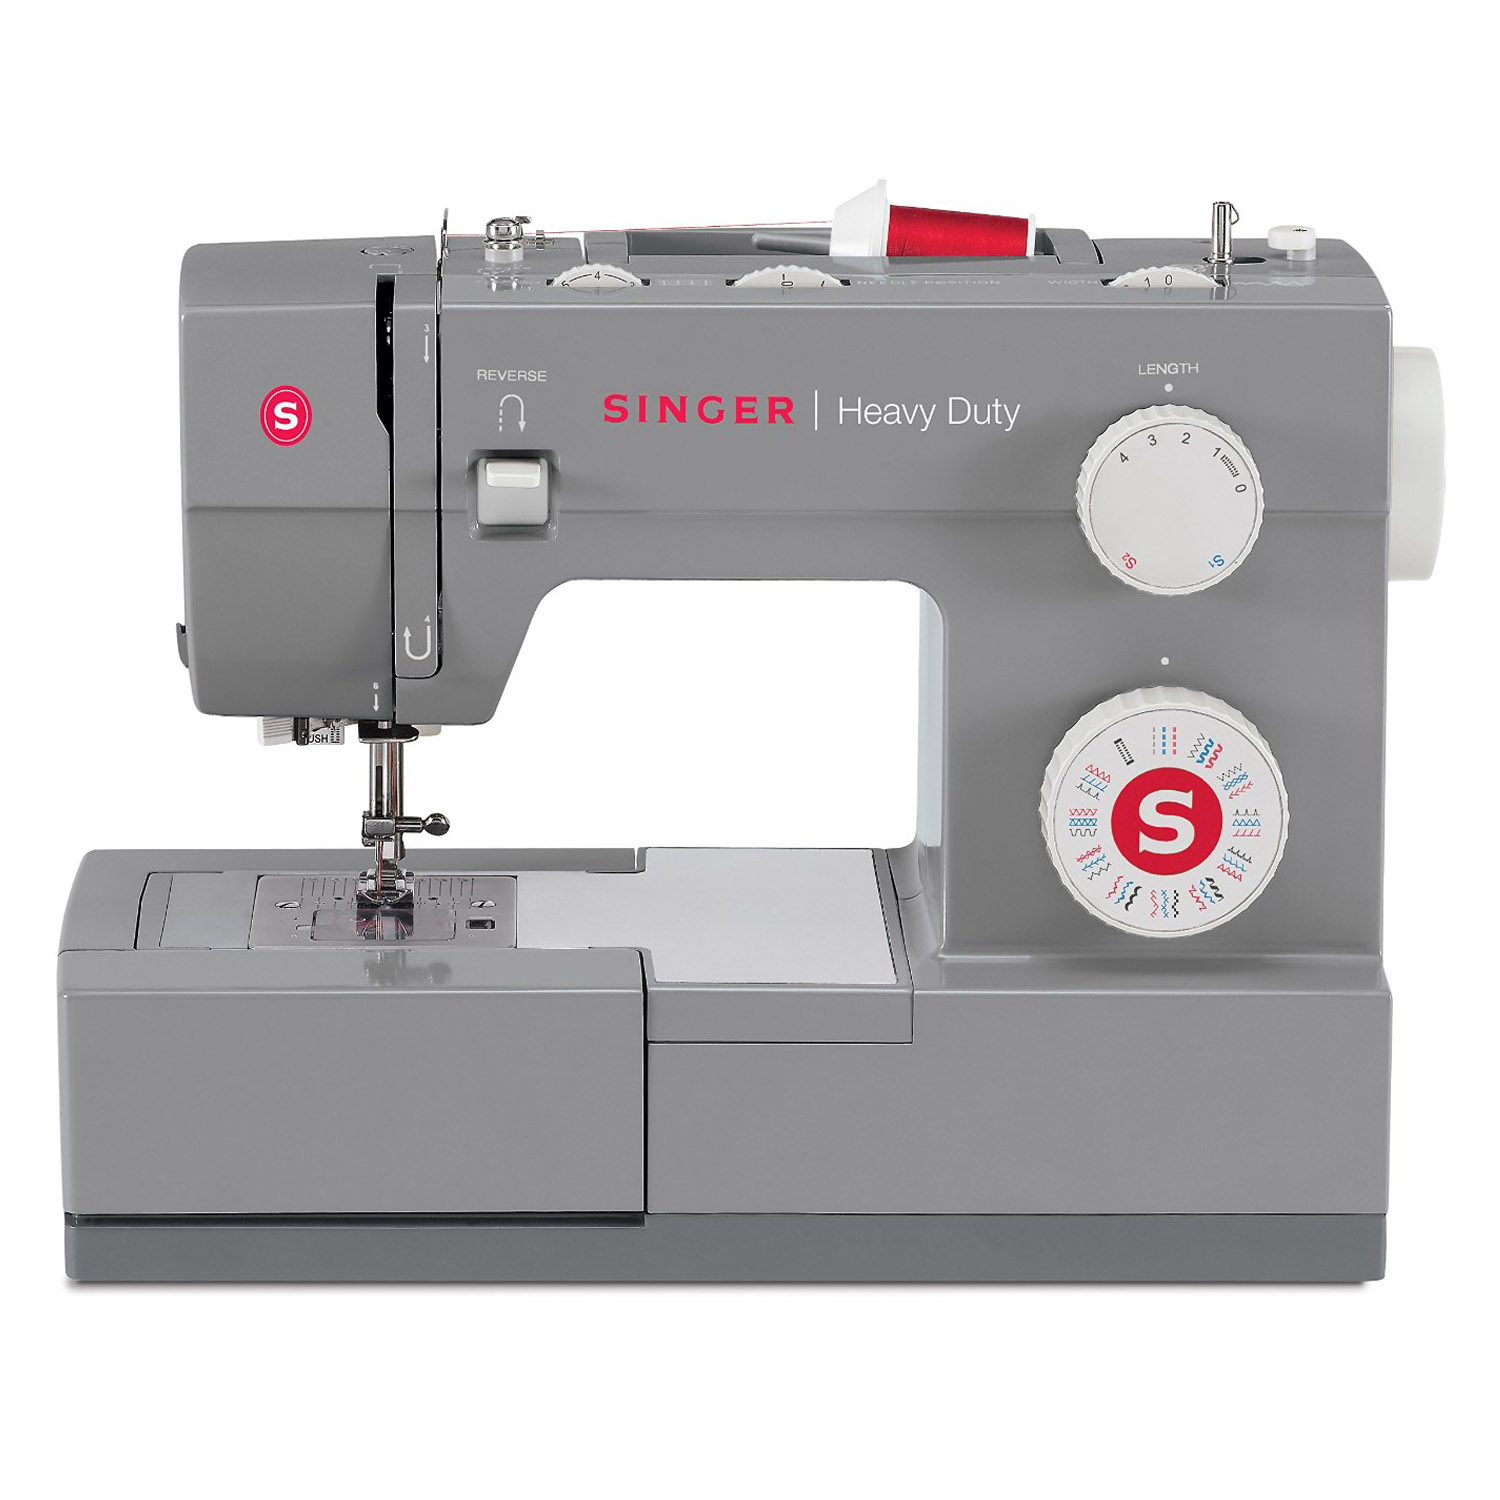 Singer 4432 Sewing Machine